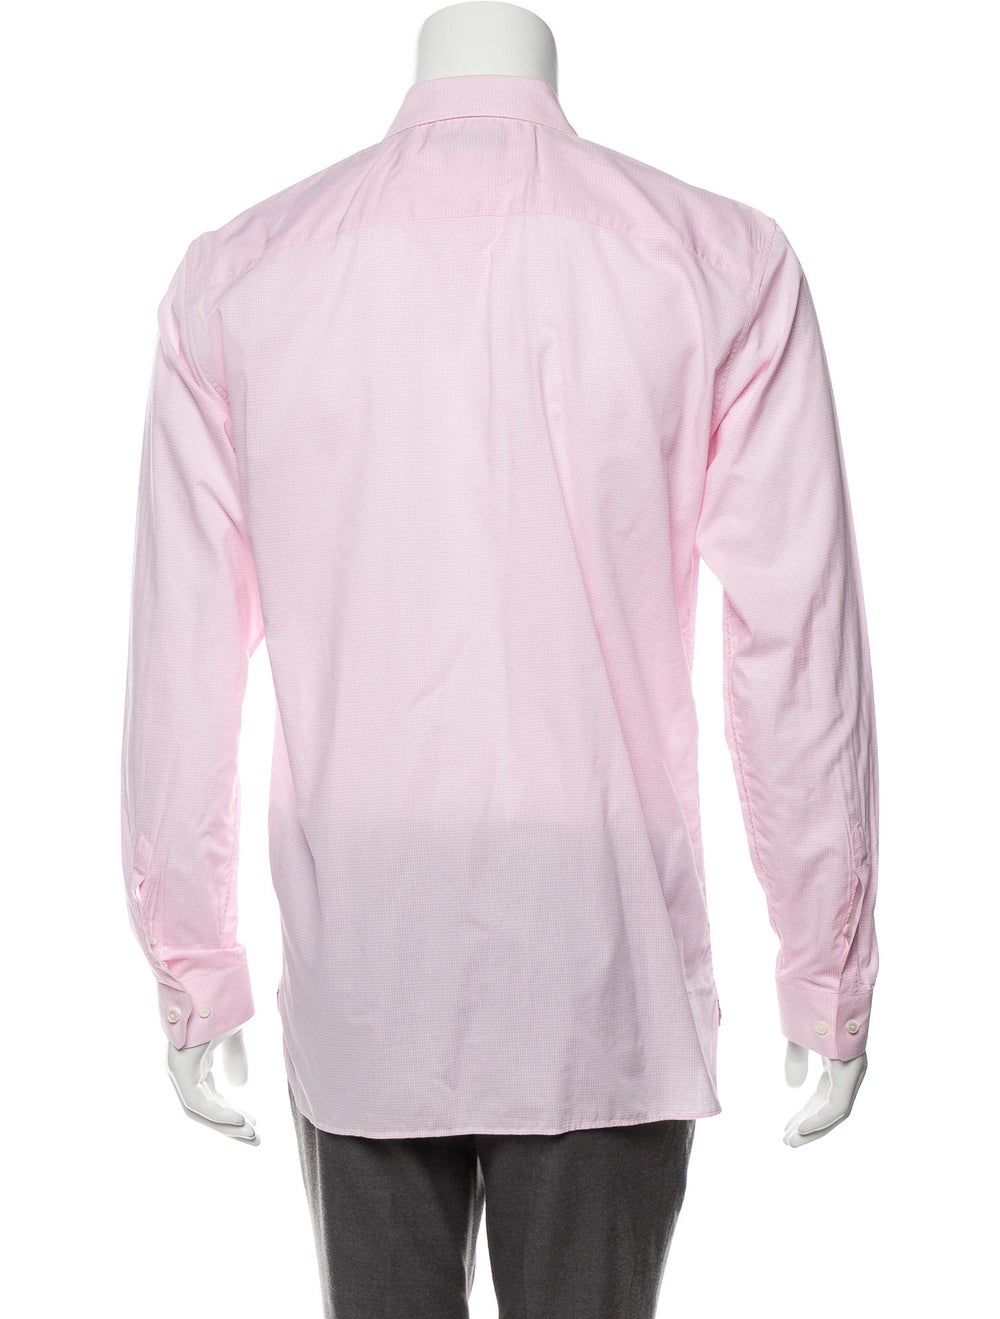 Burberry Woven Gingham Shirt pink - image 3